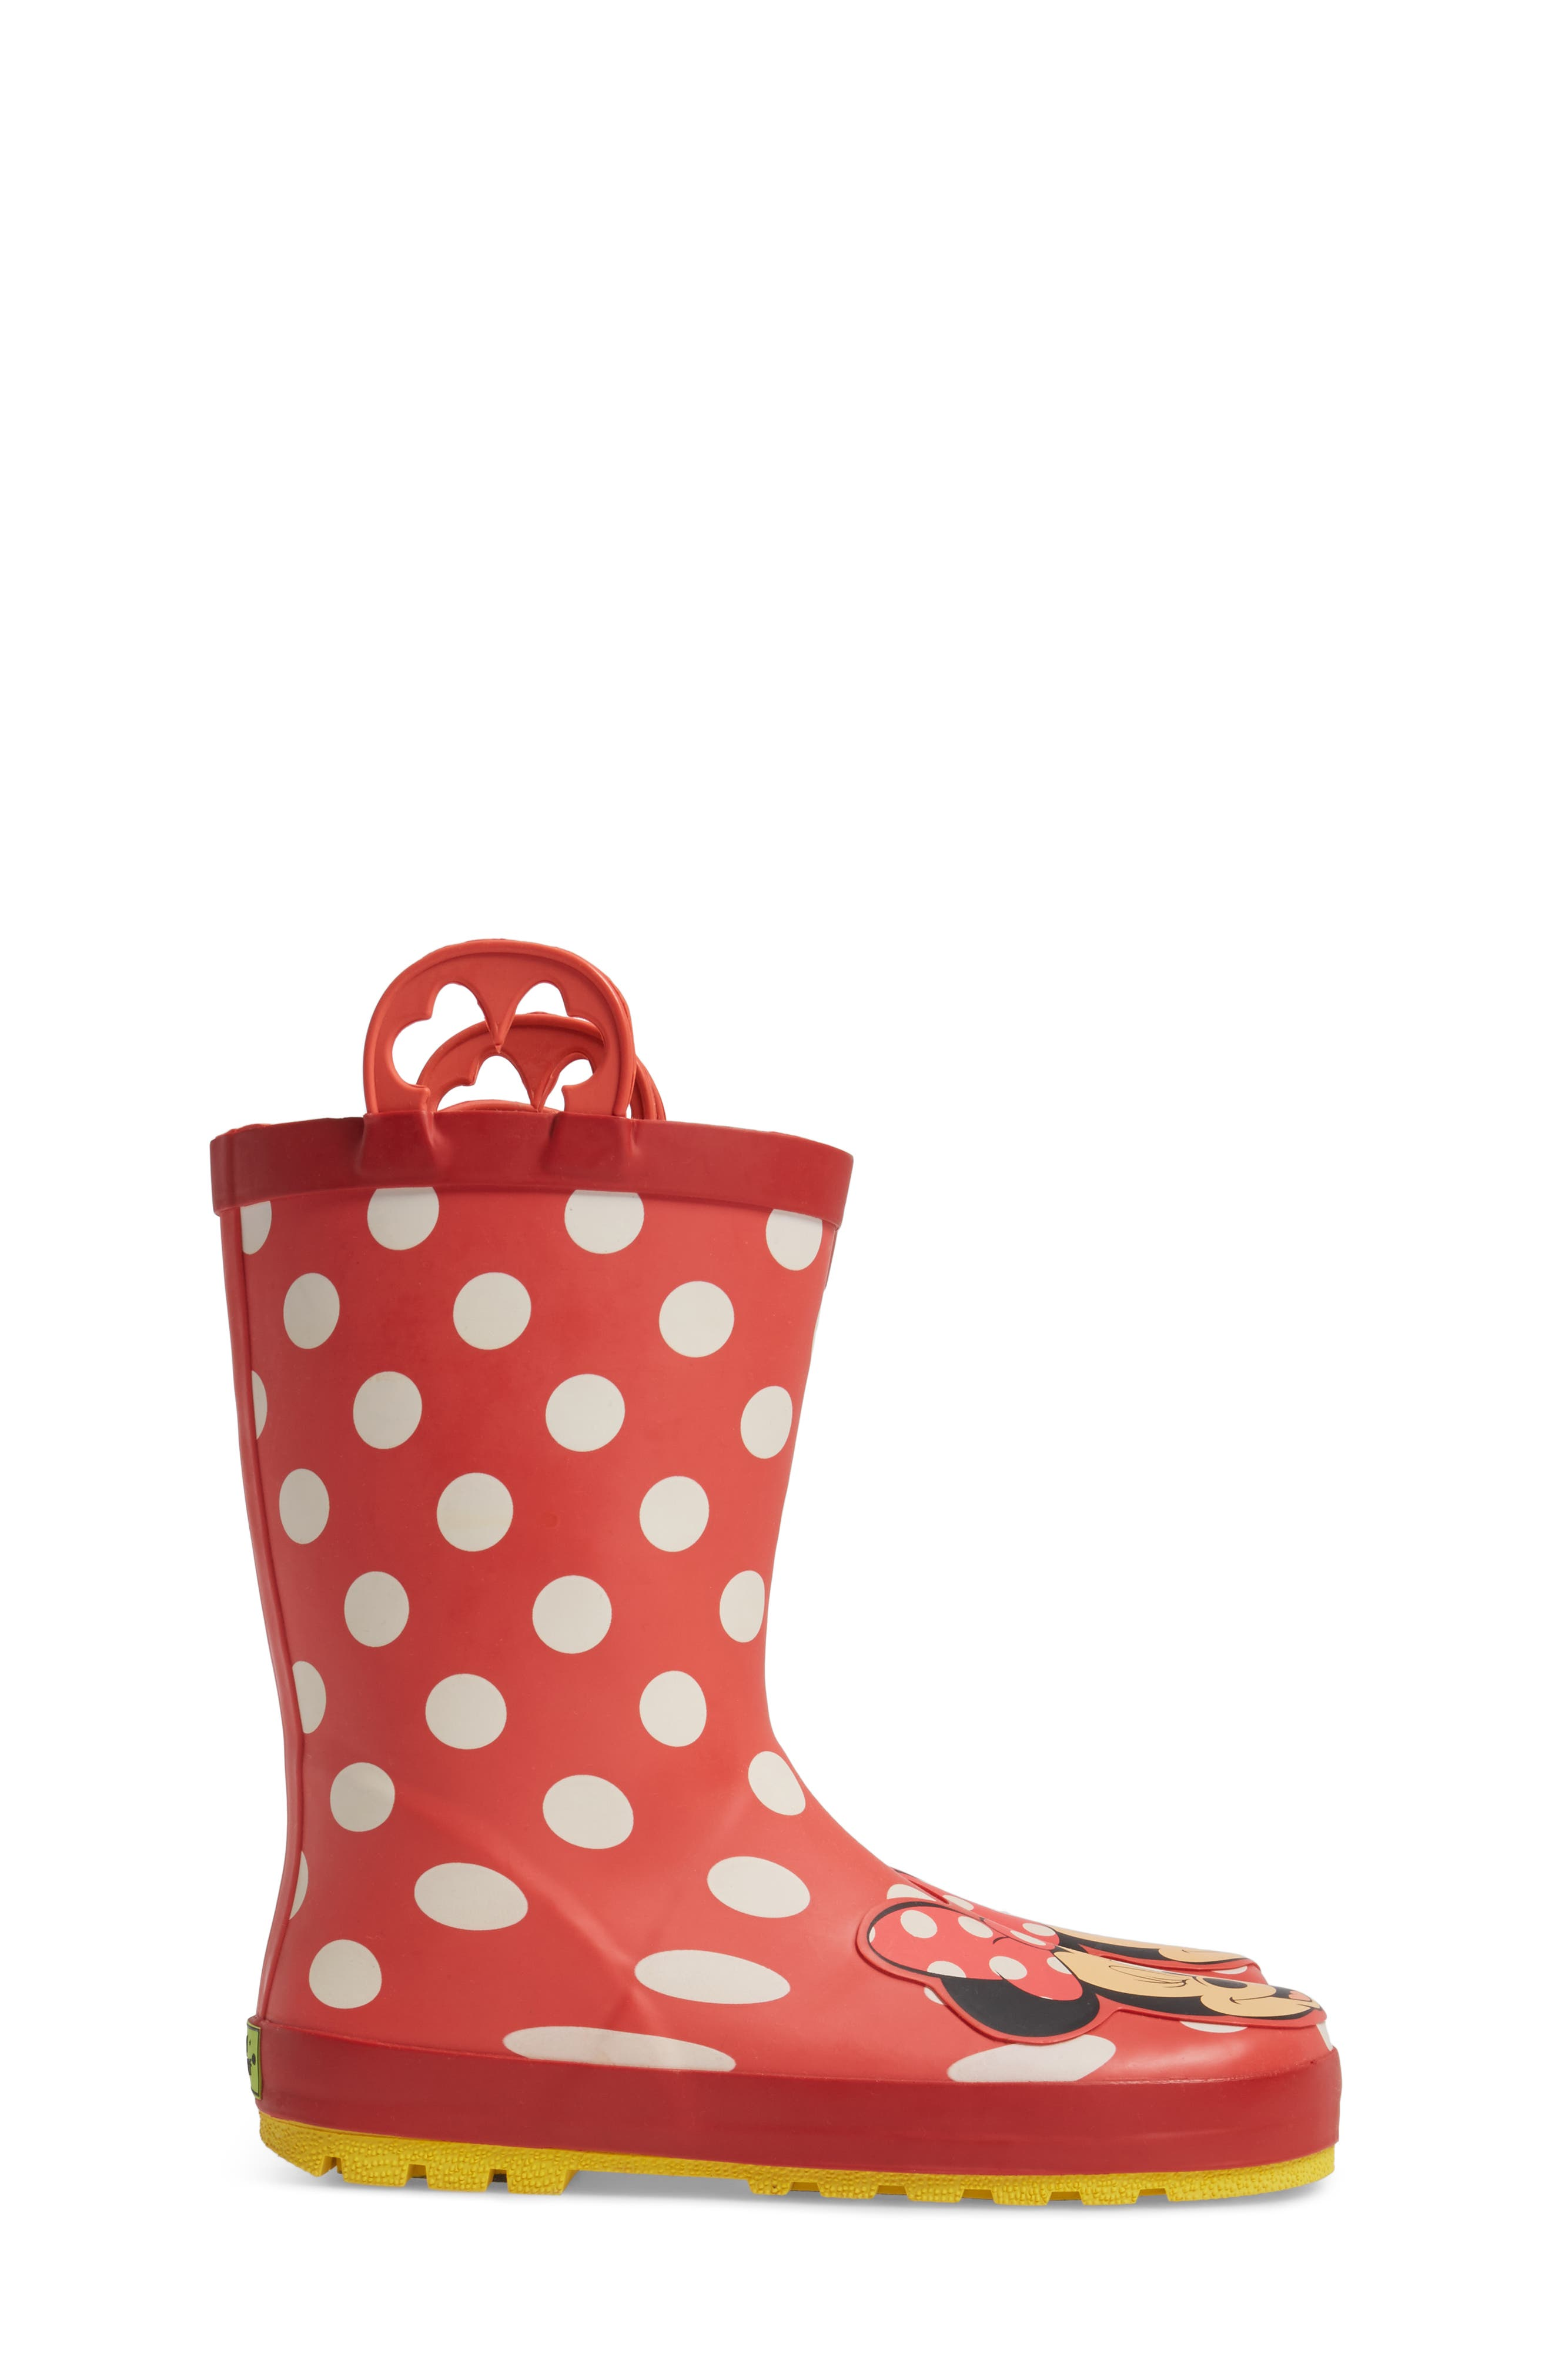 Minnie Mouse Rain Boot,                             Alternate thumbnail 3, color,                             Red